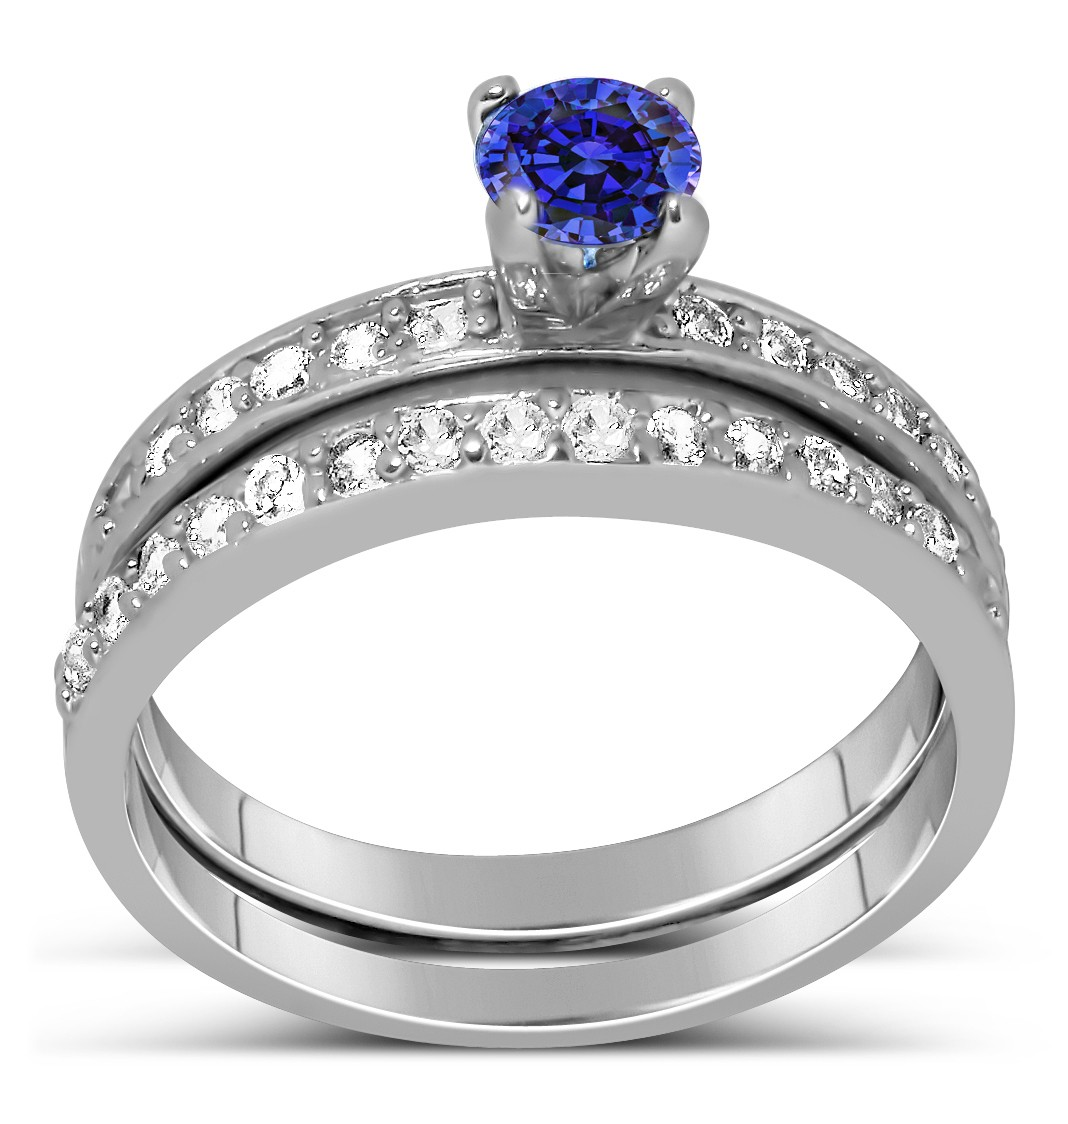 1 50 Carat Vintage Round cut Blue Sapphire and Diamond Wedding Ring Set in Wh